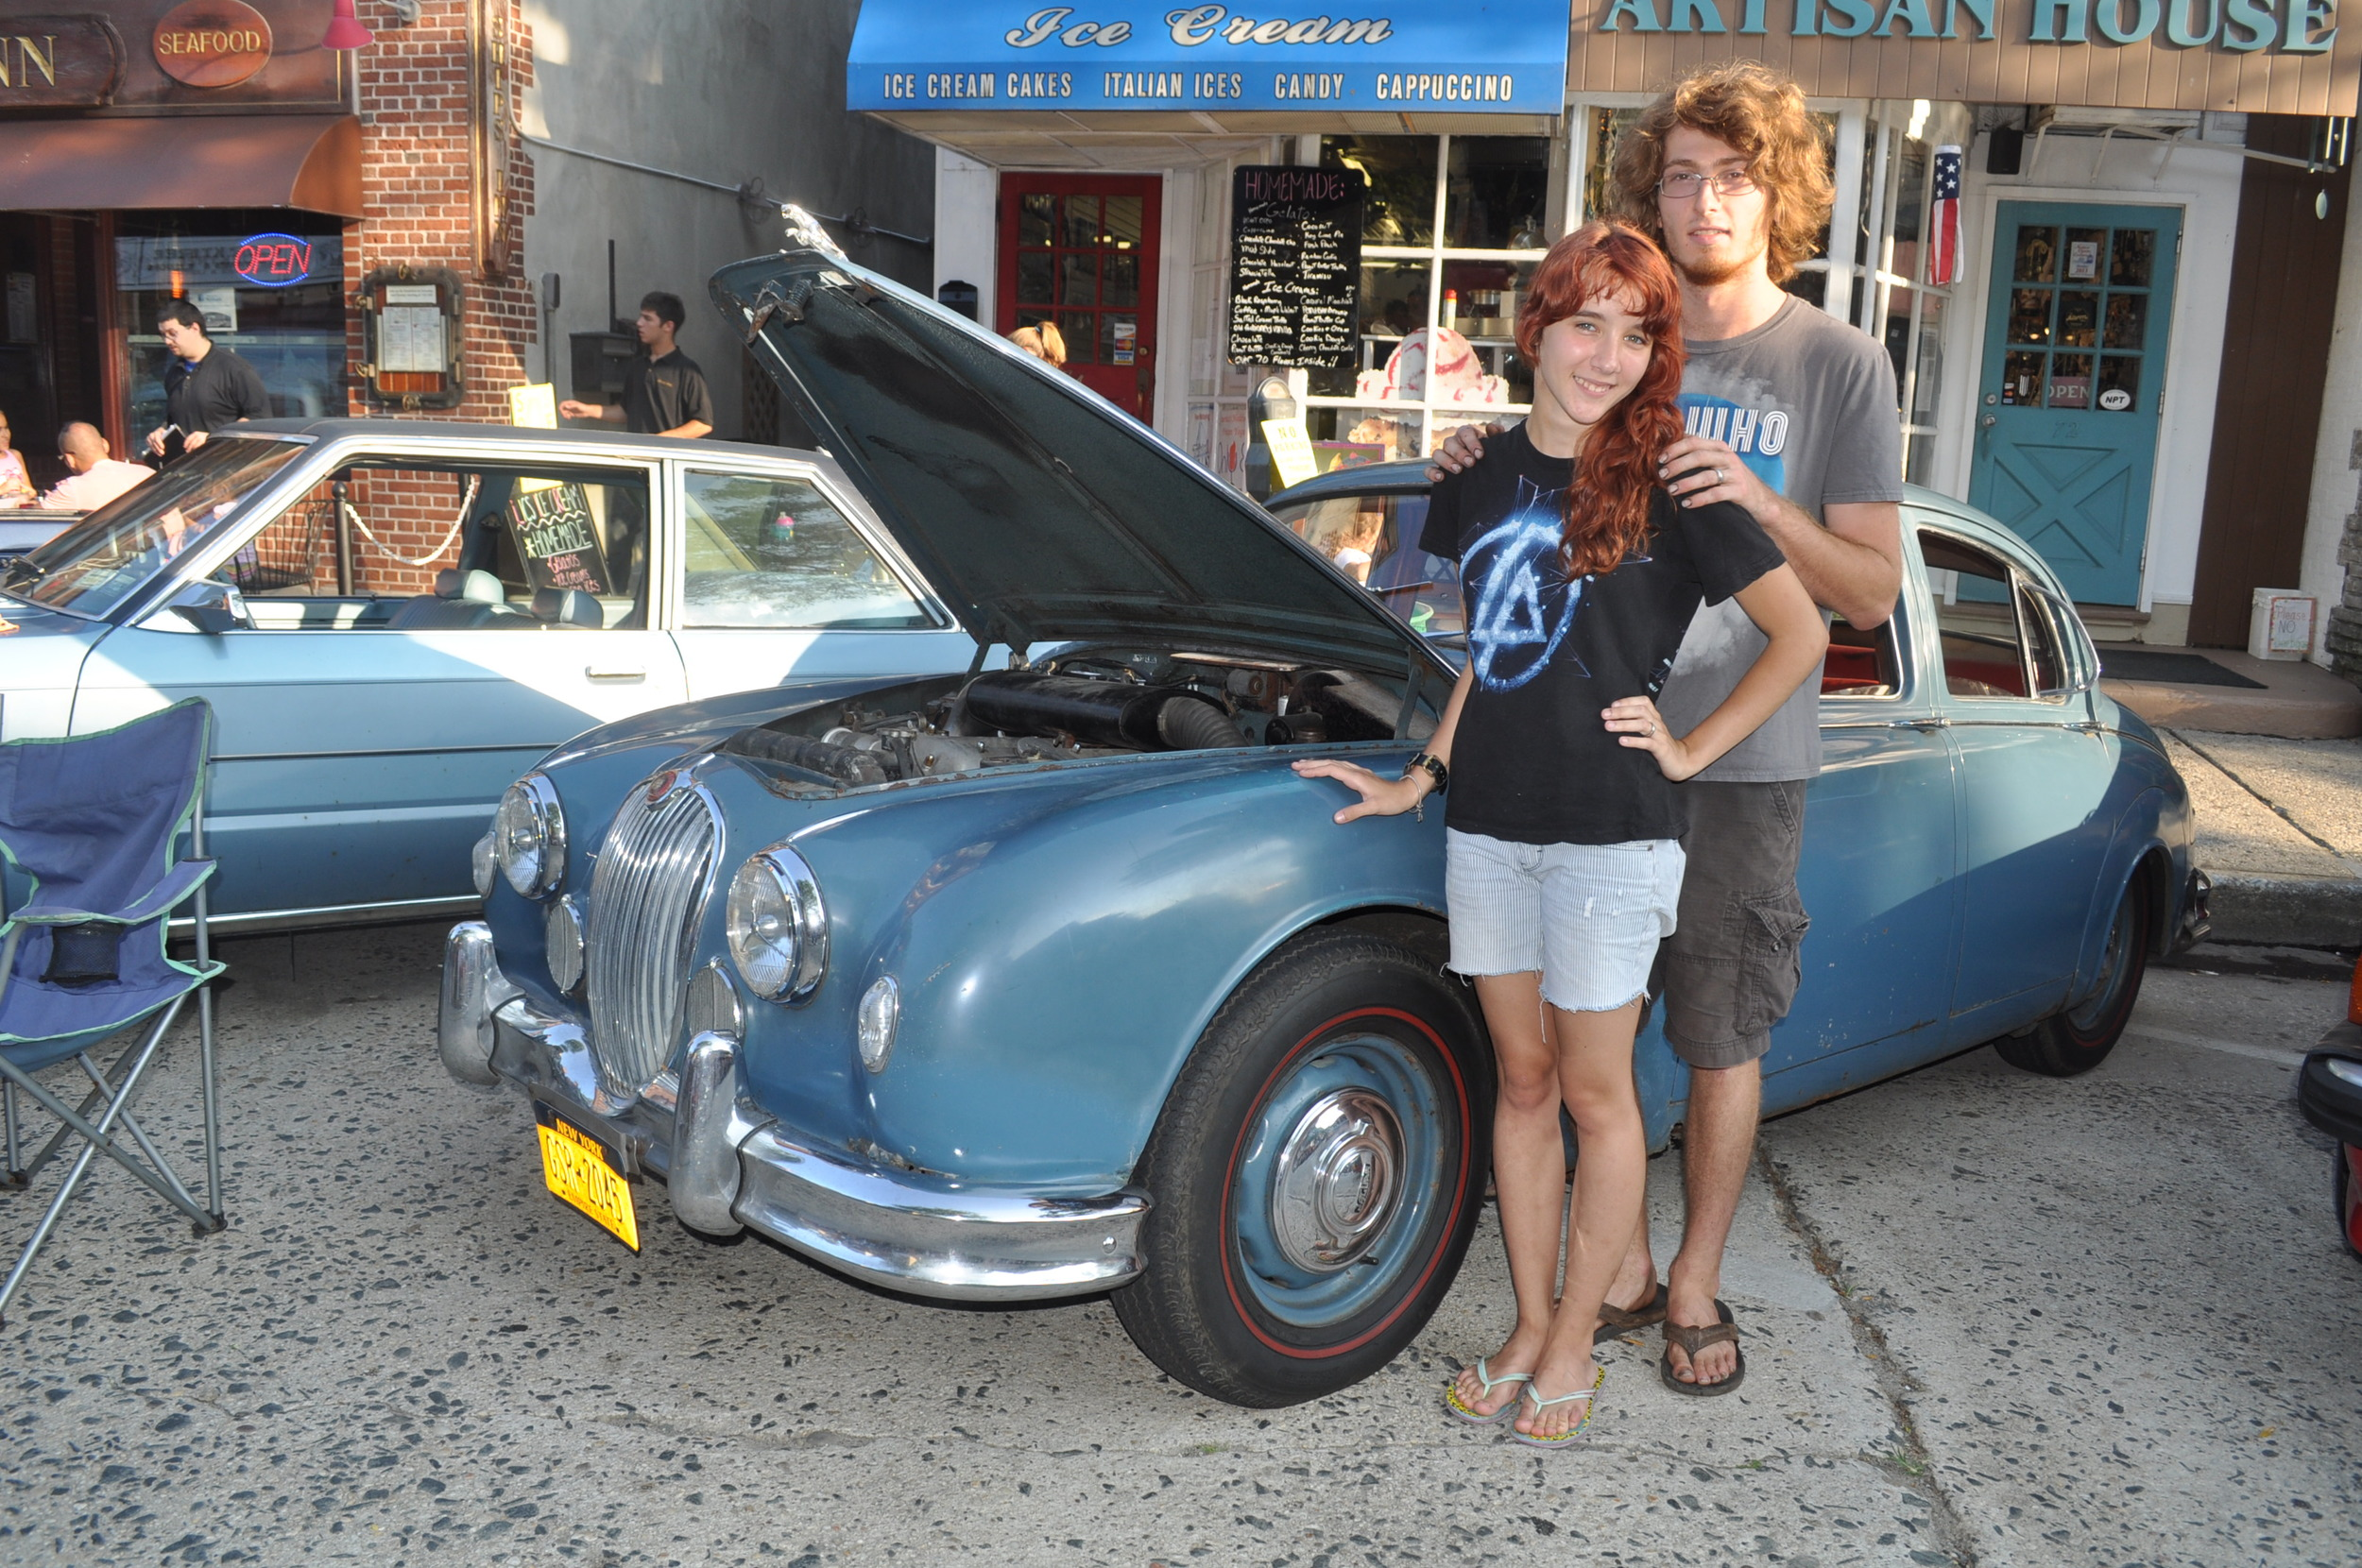 Eric Johnson and Veronika Potylitsina show off the vintage Ford hotrod - one of dozens of classic cars on display.